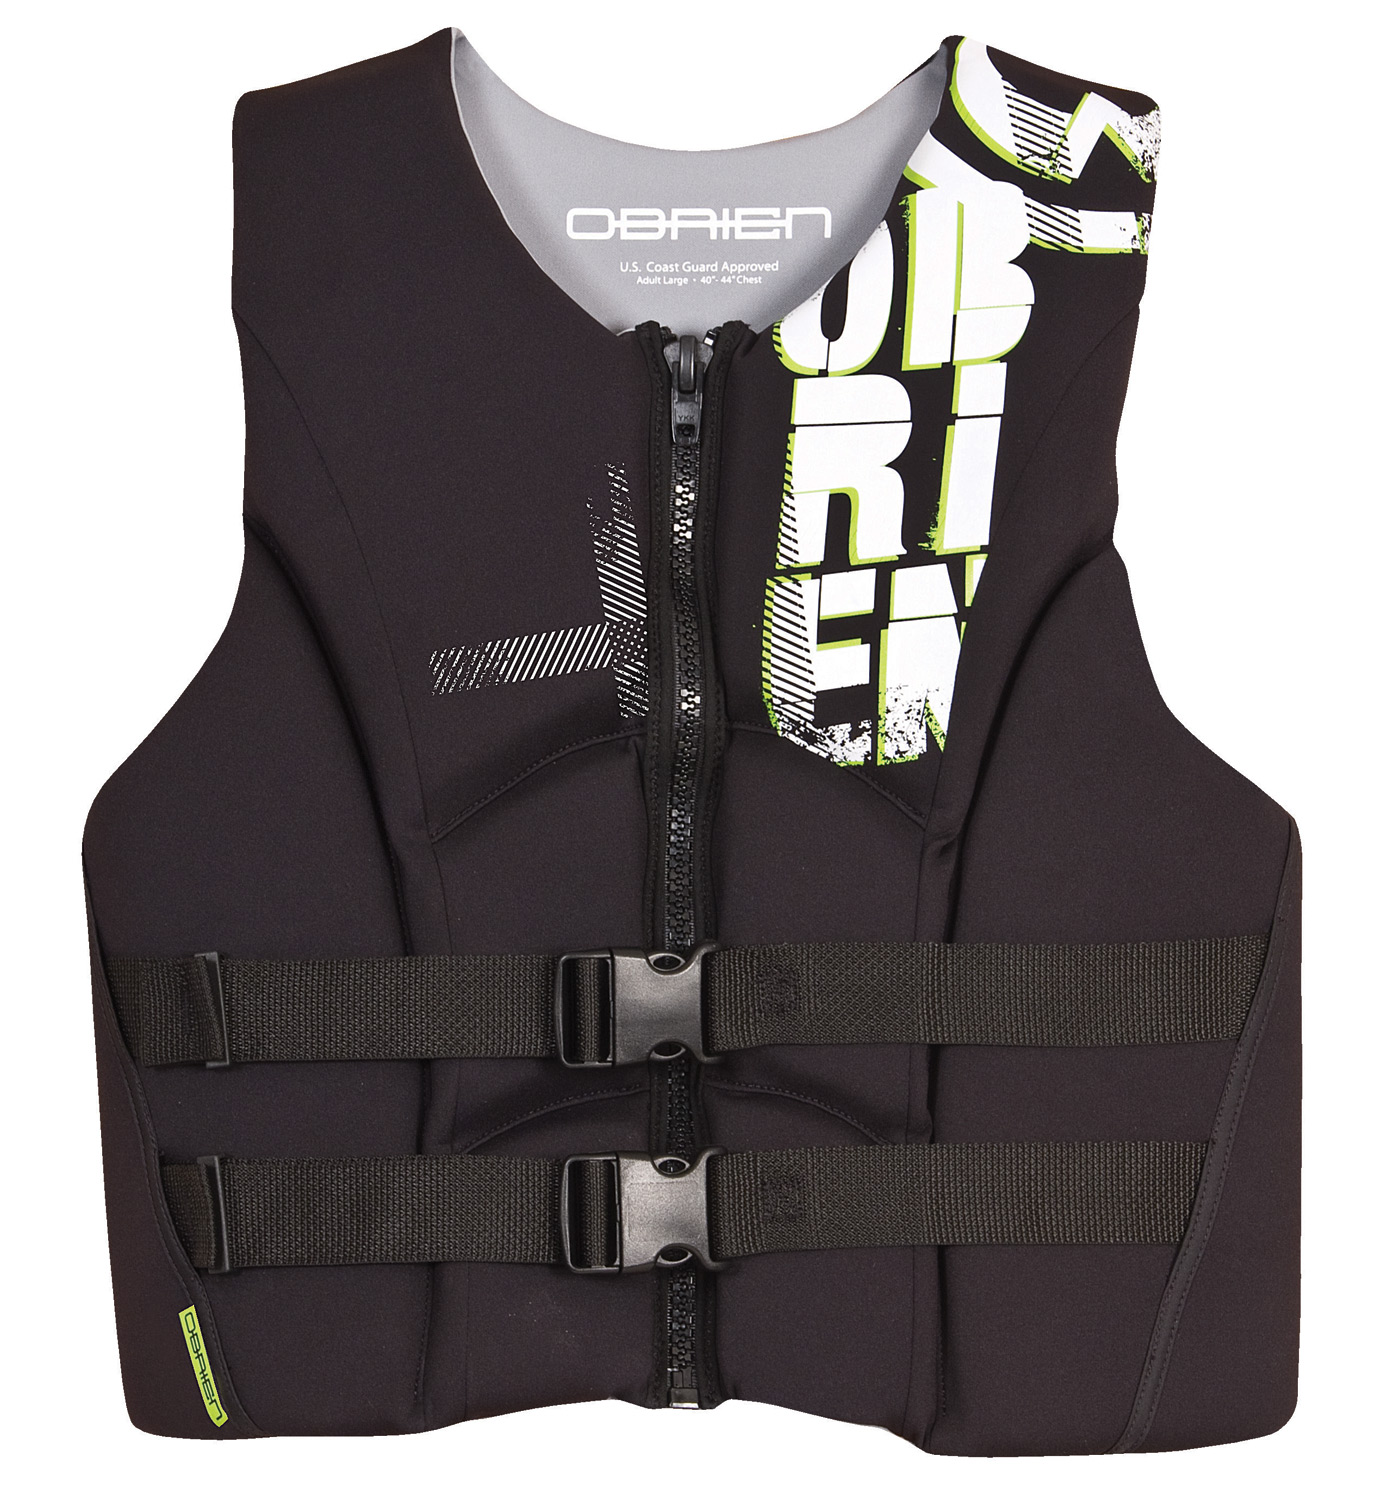 Wake Key Features of the O'Brien Flex Neoprene Wakeboard Vest: Neoprene outer for comfortable fit Zip closure and 2 belts for security Coast Guard approved - $69.95